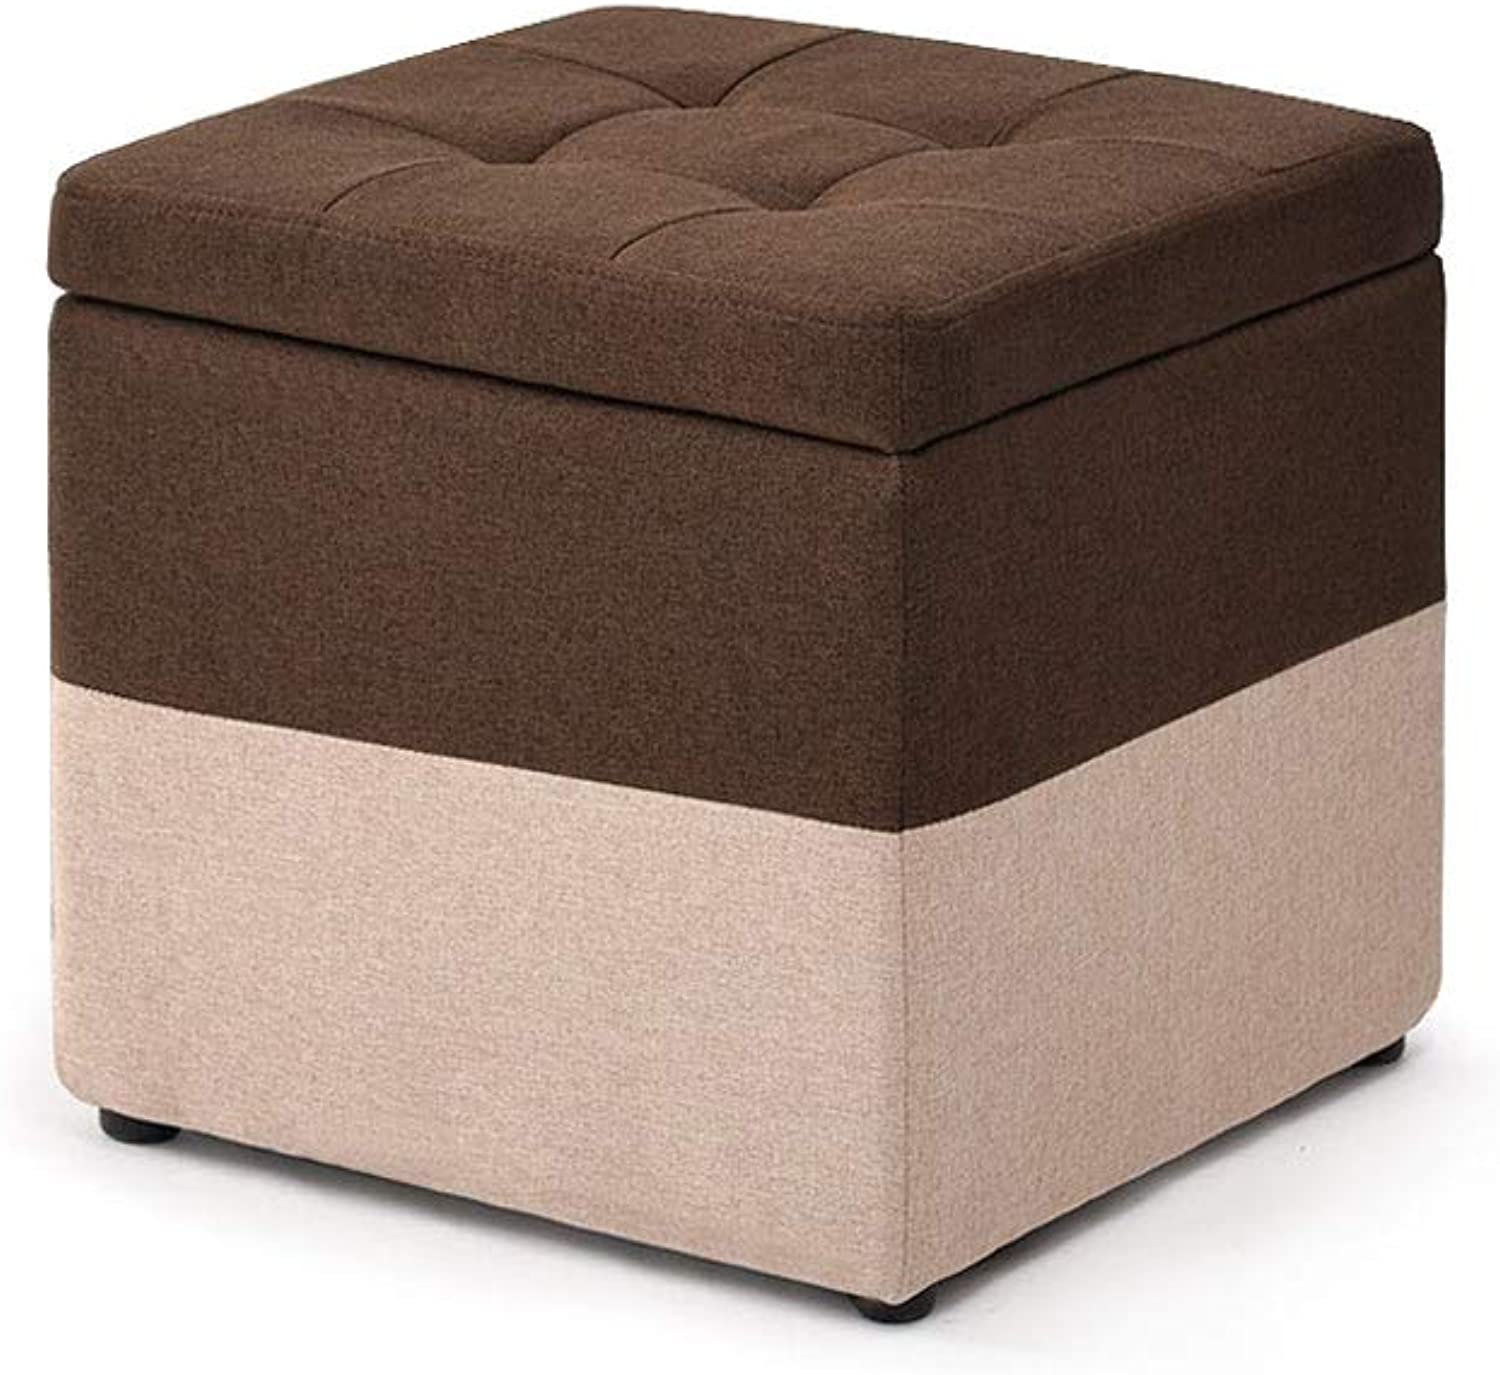 FH Fabric Footstool, Storage Stool Fashion Storage Stool Living Room Low Stool Coffee Table Stool 40×40×40cm, Multi-color Selection (color   Brown)